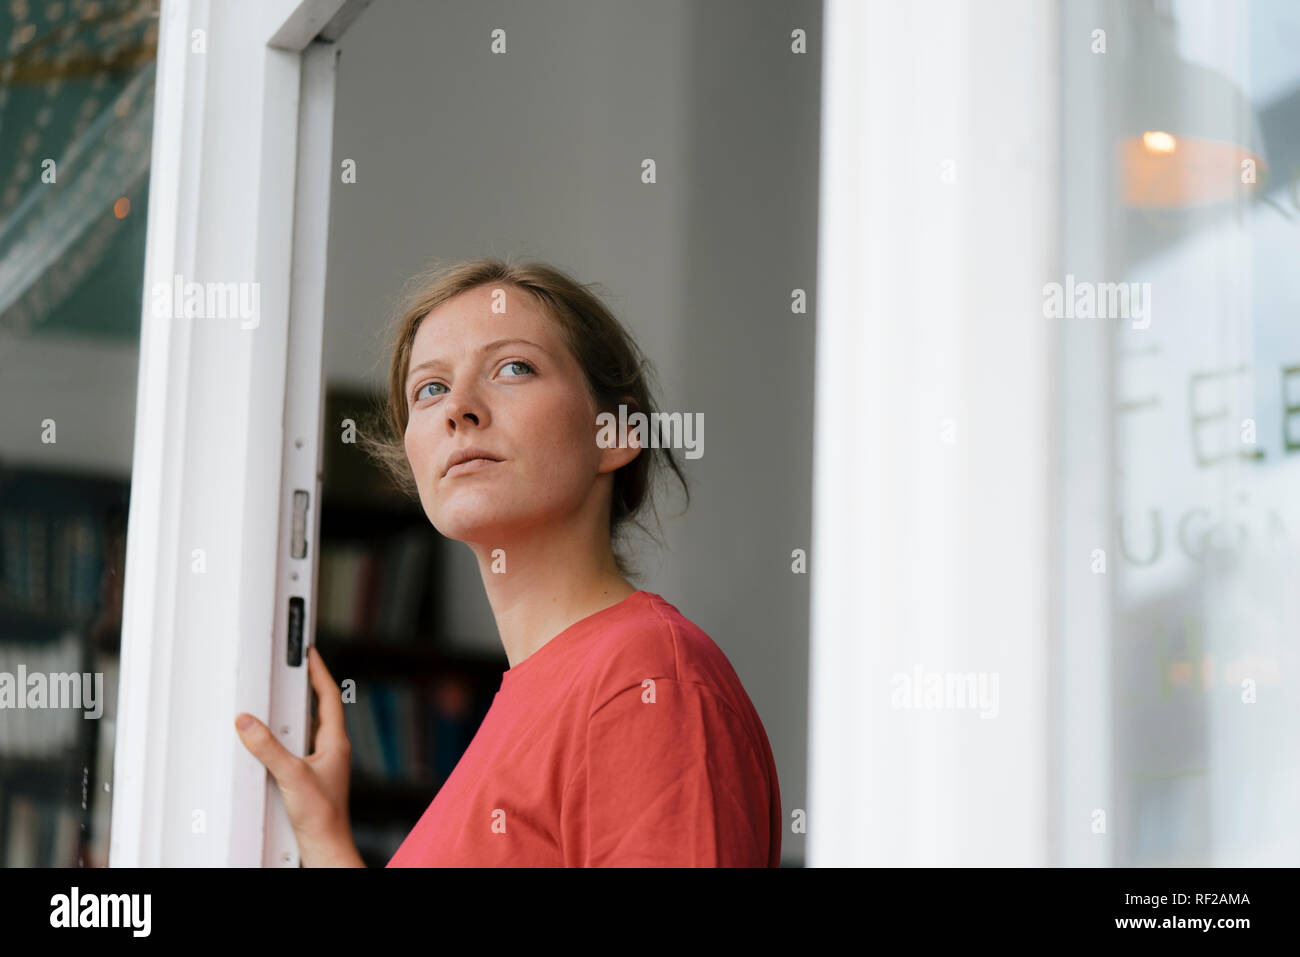 Young woman at French door in a cafe looking around - Stock Image